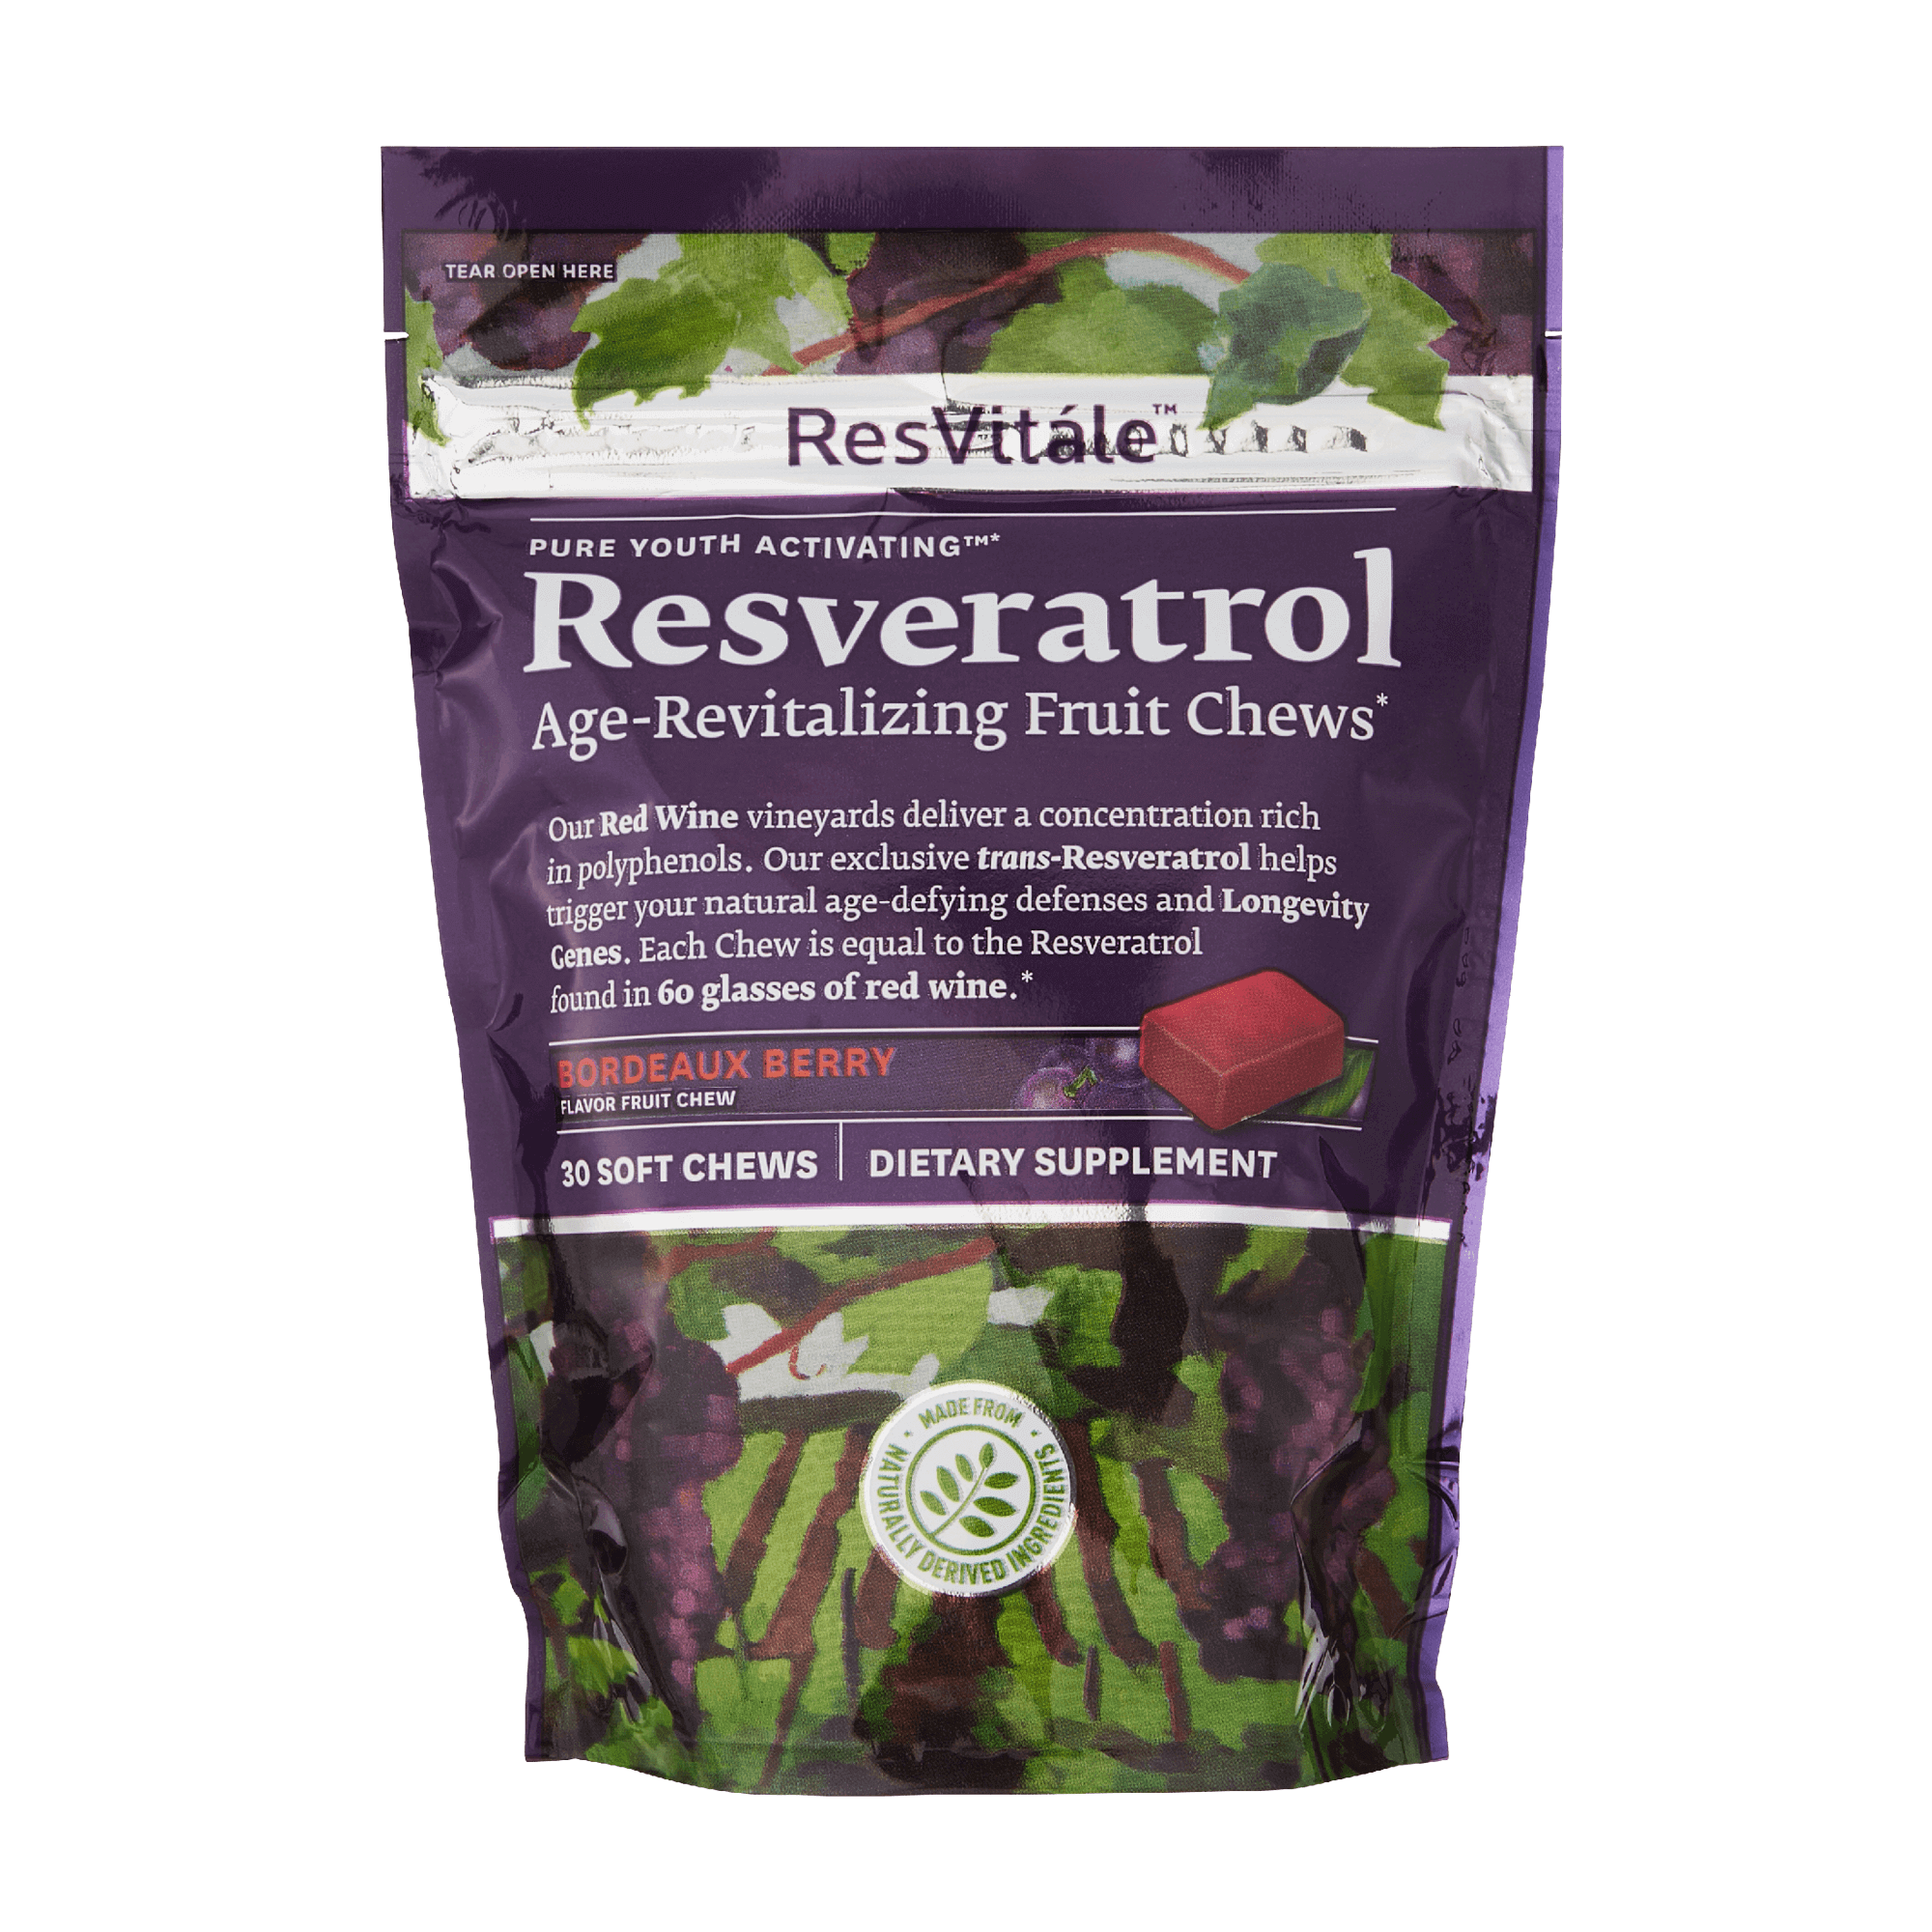 ResVitale, Resveratrol Chews, Age-Revitalizing, red wine concentrated polyphenols, trans-resveratrol, natural age-defying, longevity genes, berry flavored, natural ingredients, 30 soft chews